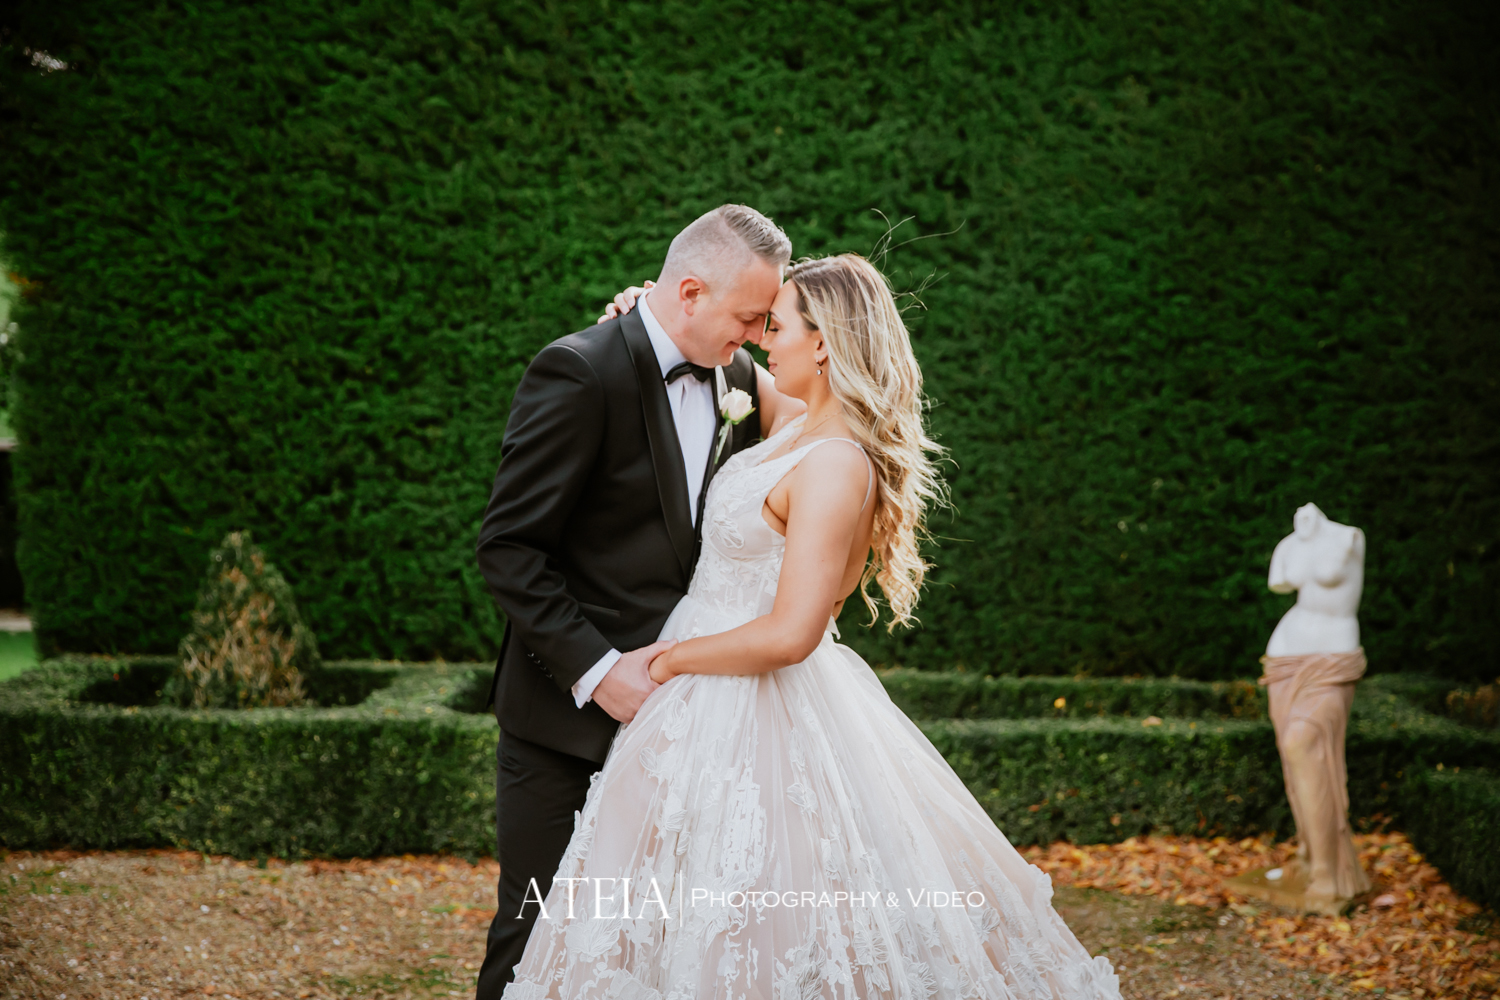 , A COVID19 Wedding in Victoria's Most Elegant Venue